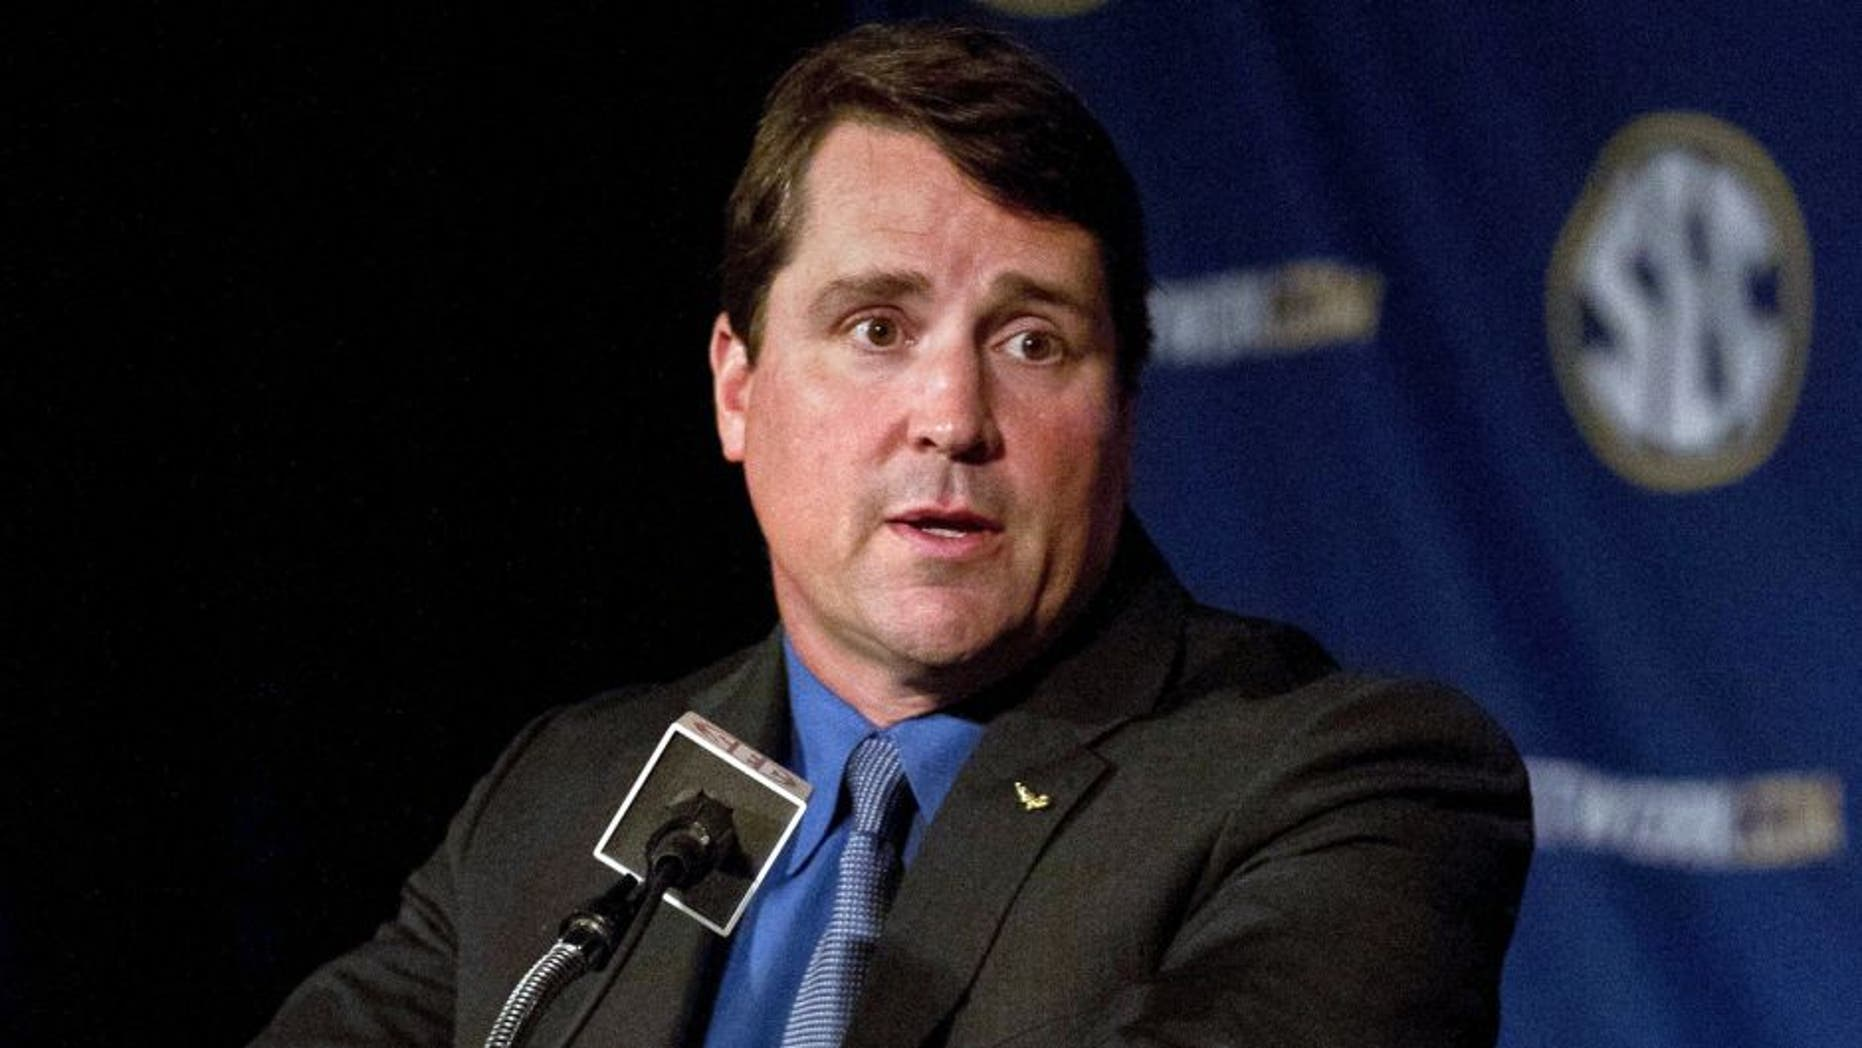 Jul 14, 2014; Hoover, AL, USA; Florida head coach Will Muschamp talks to the media during the SEC Football Media Days at the Wynfrey Hotel. Mandatory Credit: Marvin Gentry-USA TODAY Sports